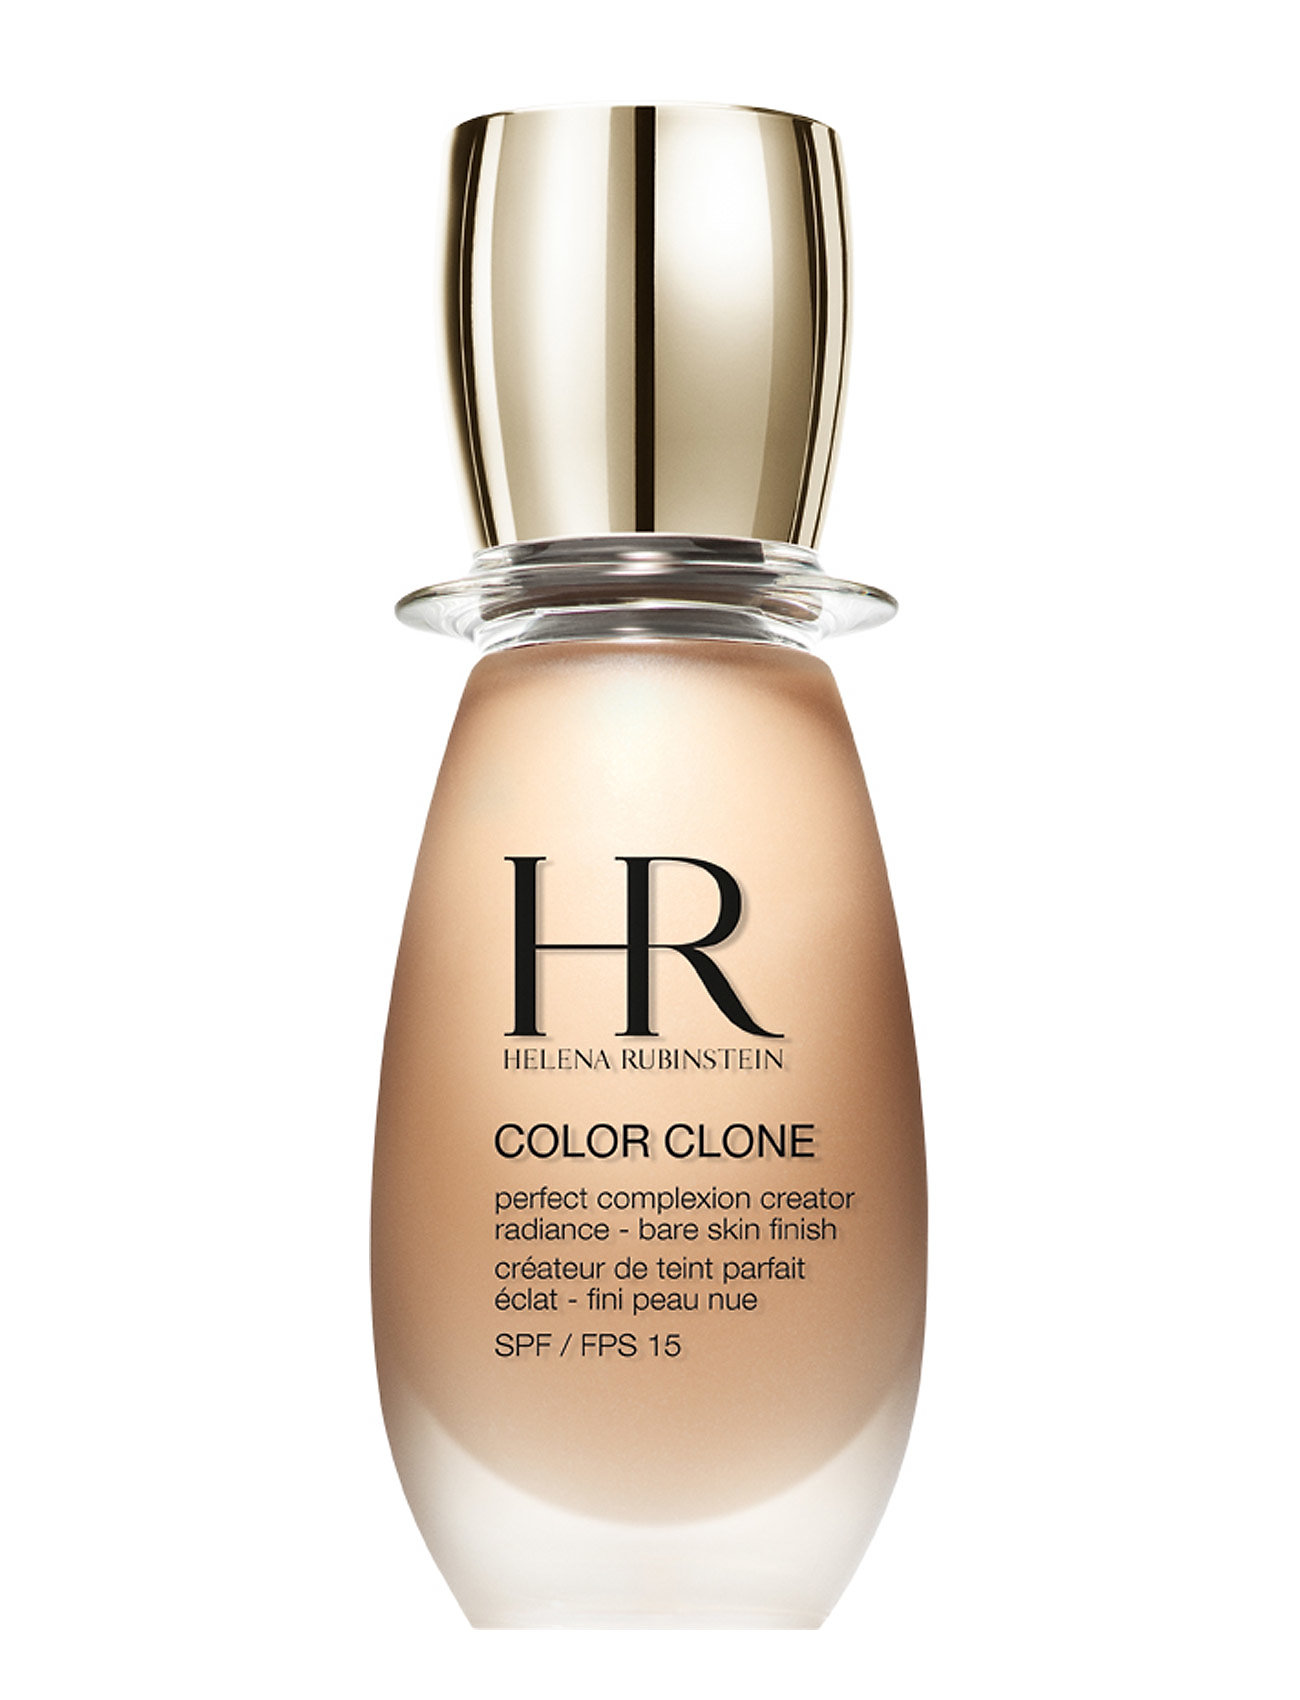 Image of Color Cl Peach 15 Foundation Makeup Helena Rubinstein (3260818851)